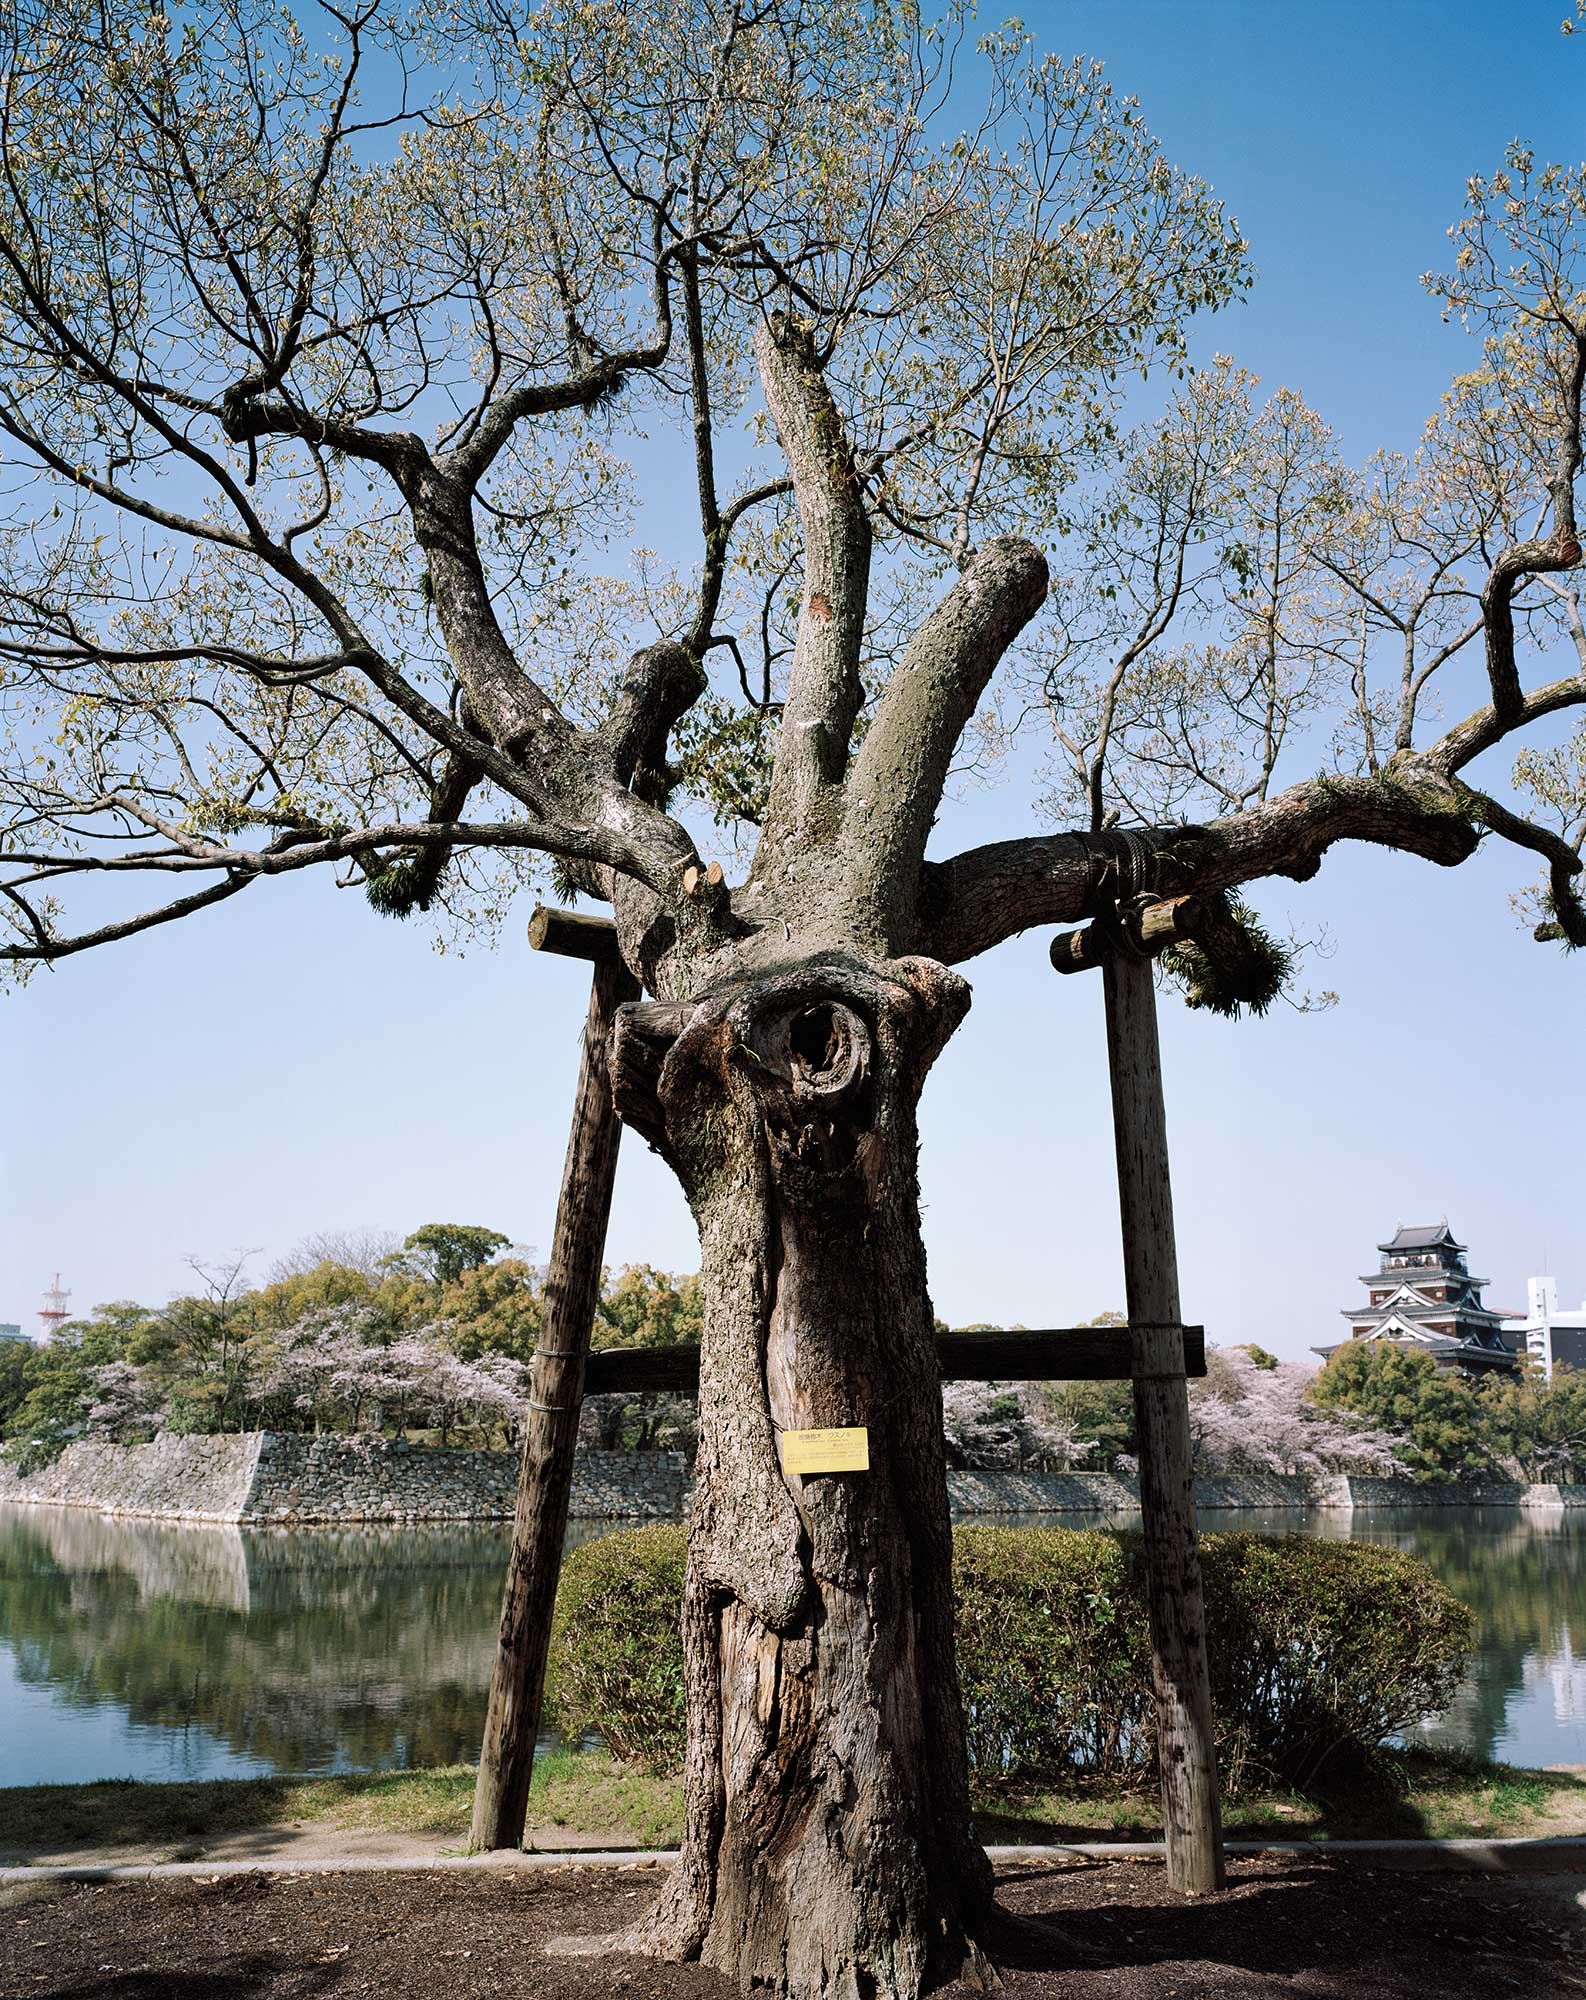 A-bombed Camphor Tree Across The Moat from Hiroshima Castle, 1200 meters from the hypocenter, April 2013, Chromogenic print, 30 x 40 inch.